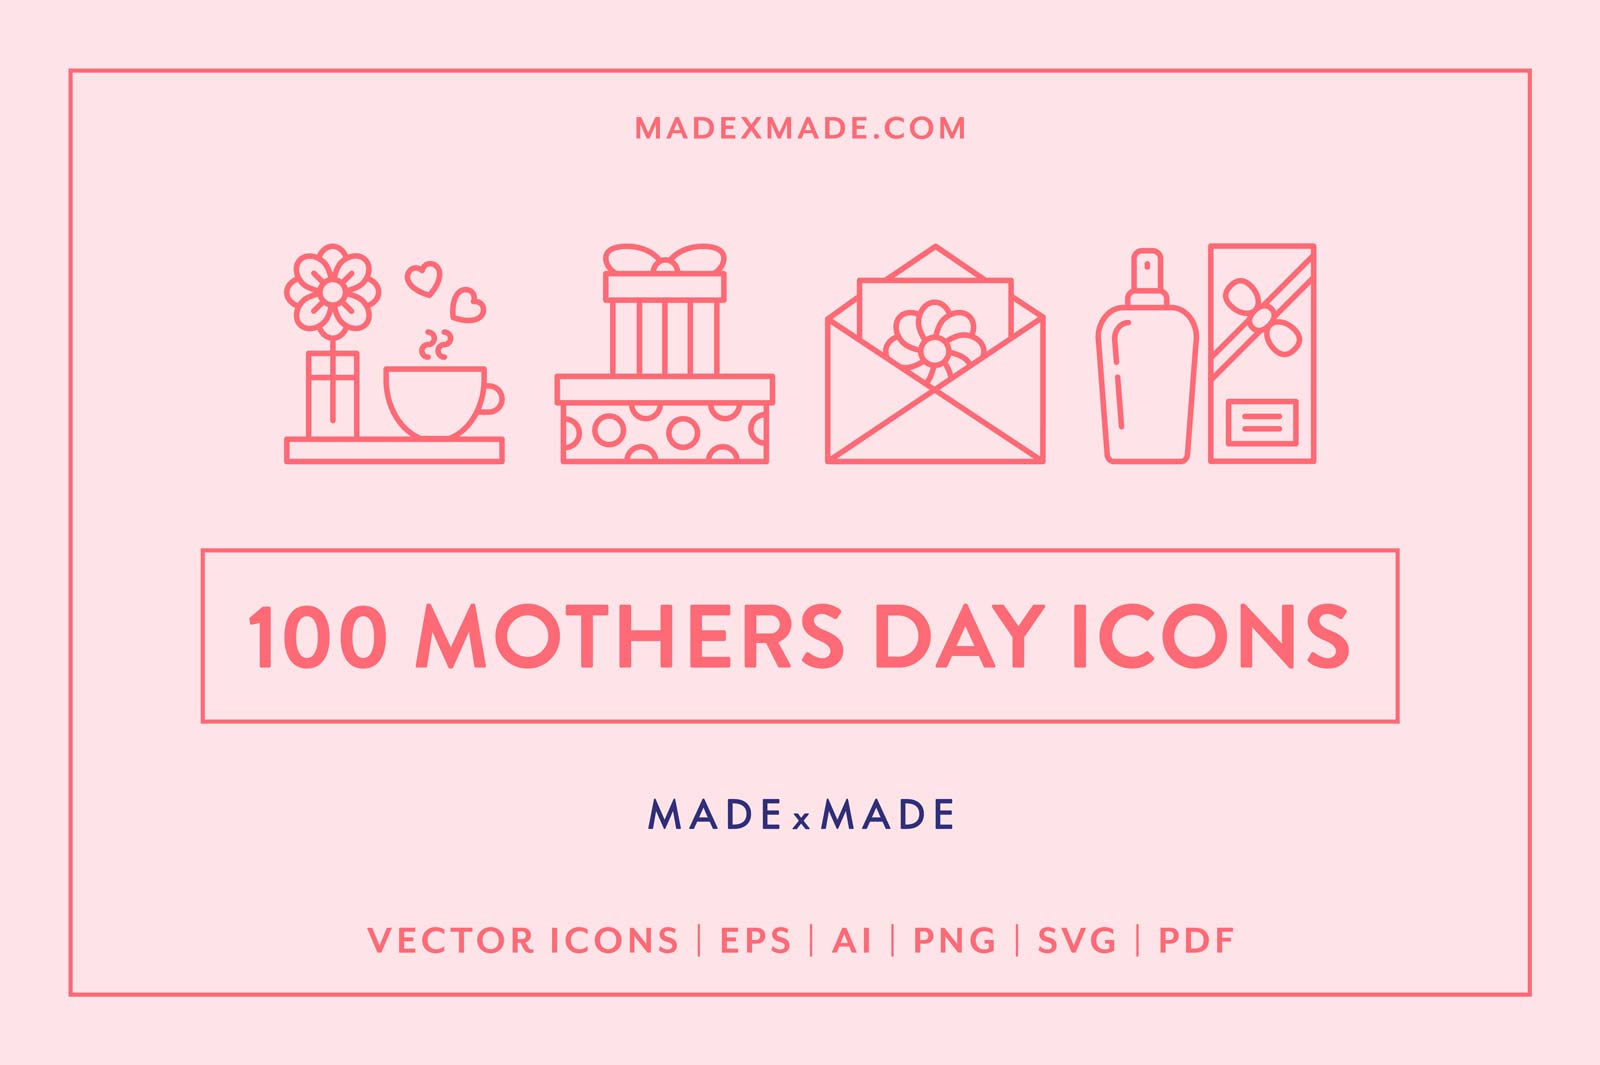 made x made icons mothers day